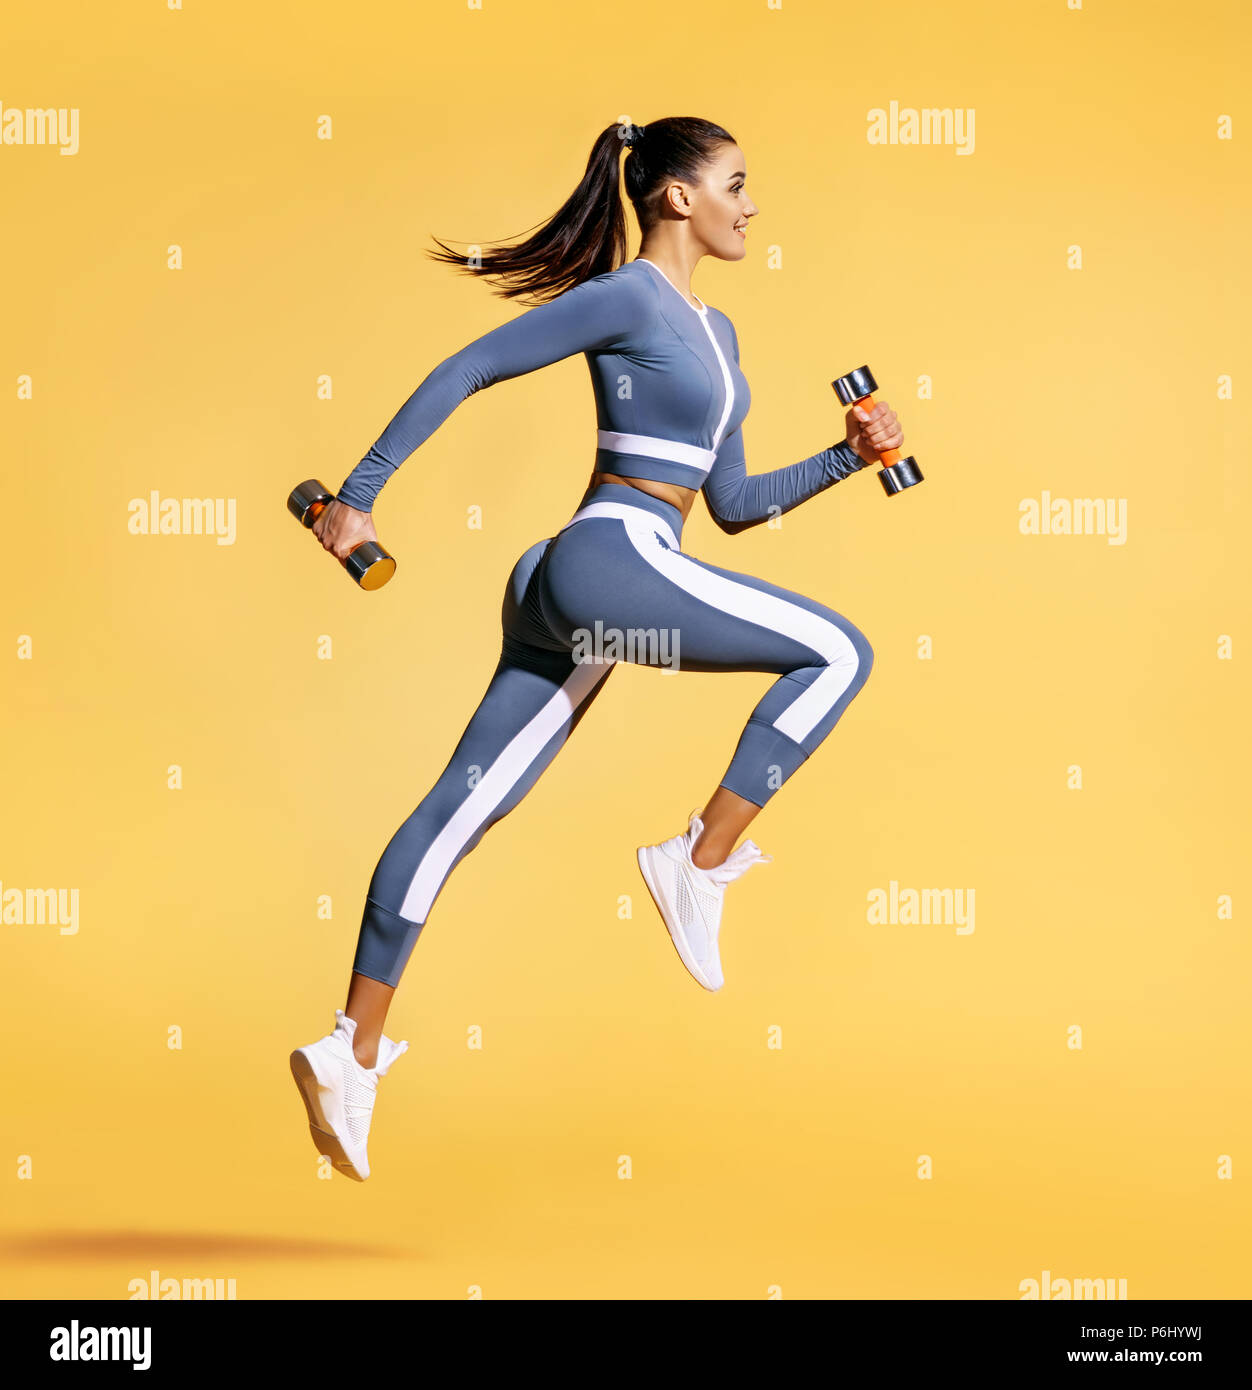 Sporty woman jumping with dumbbells. Photo of active woman in sportswear on yellow background. Dynamic movement. Side view. Sport and healthy lifestyl - Stock Image